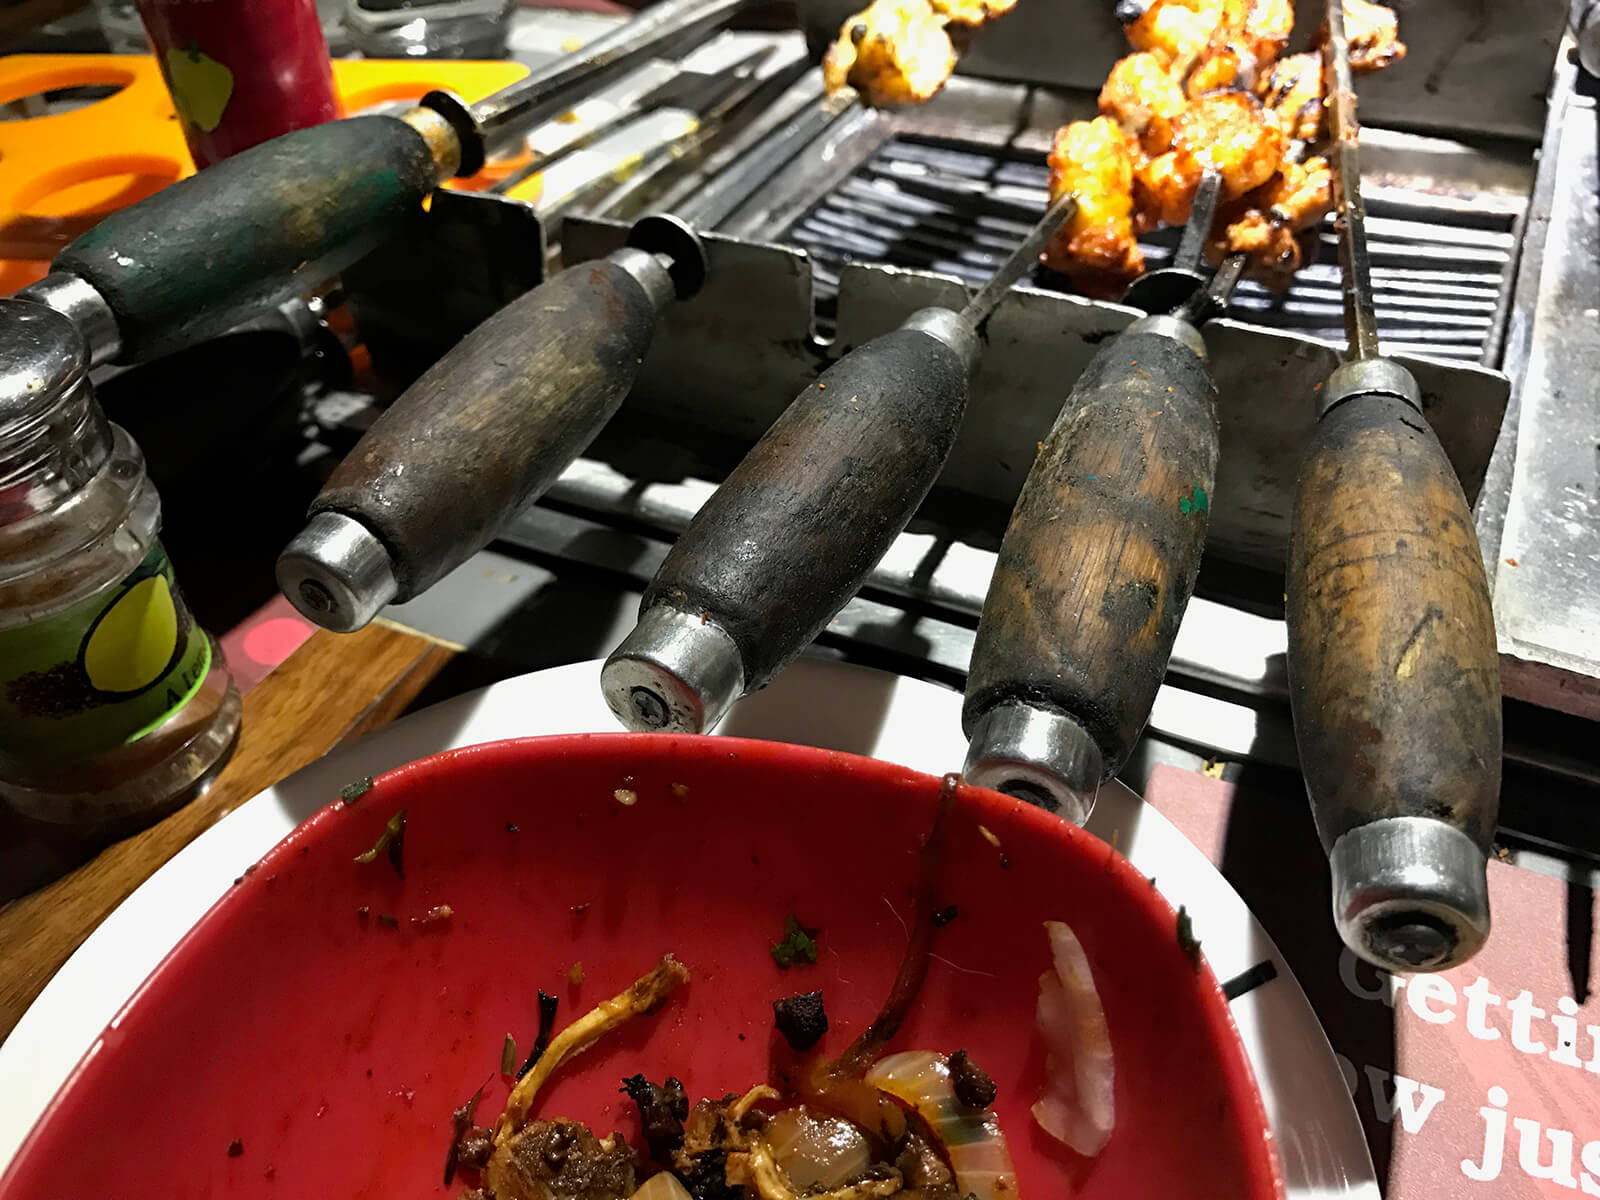 AB's - Absolute Barbecues